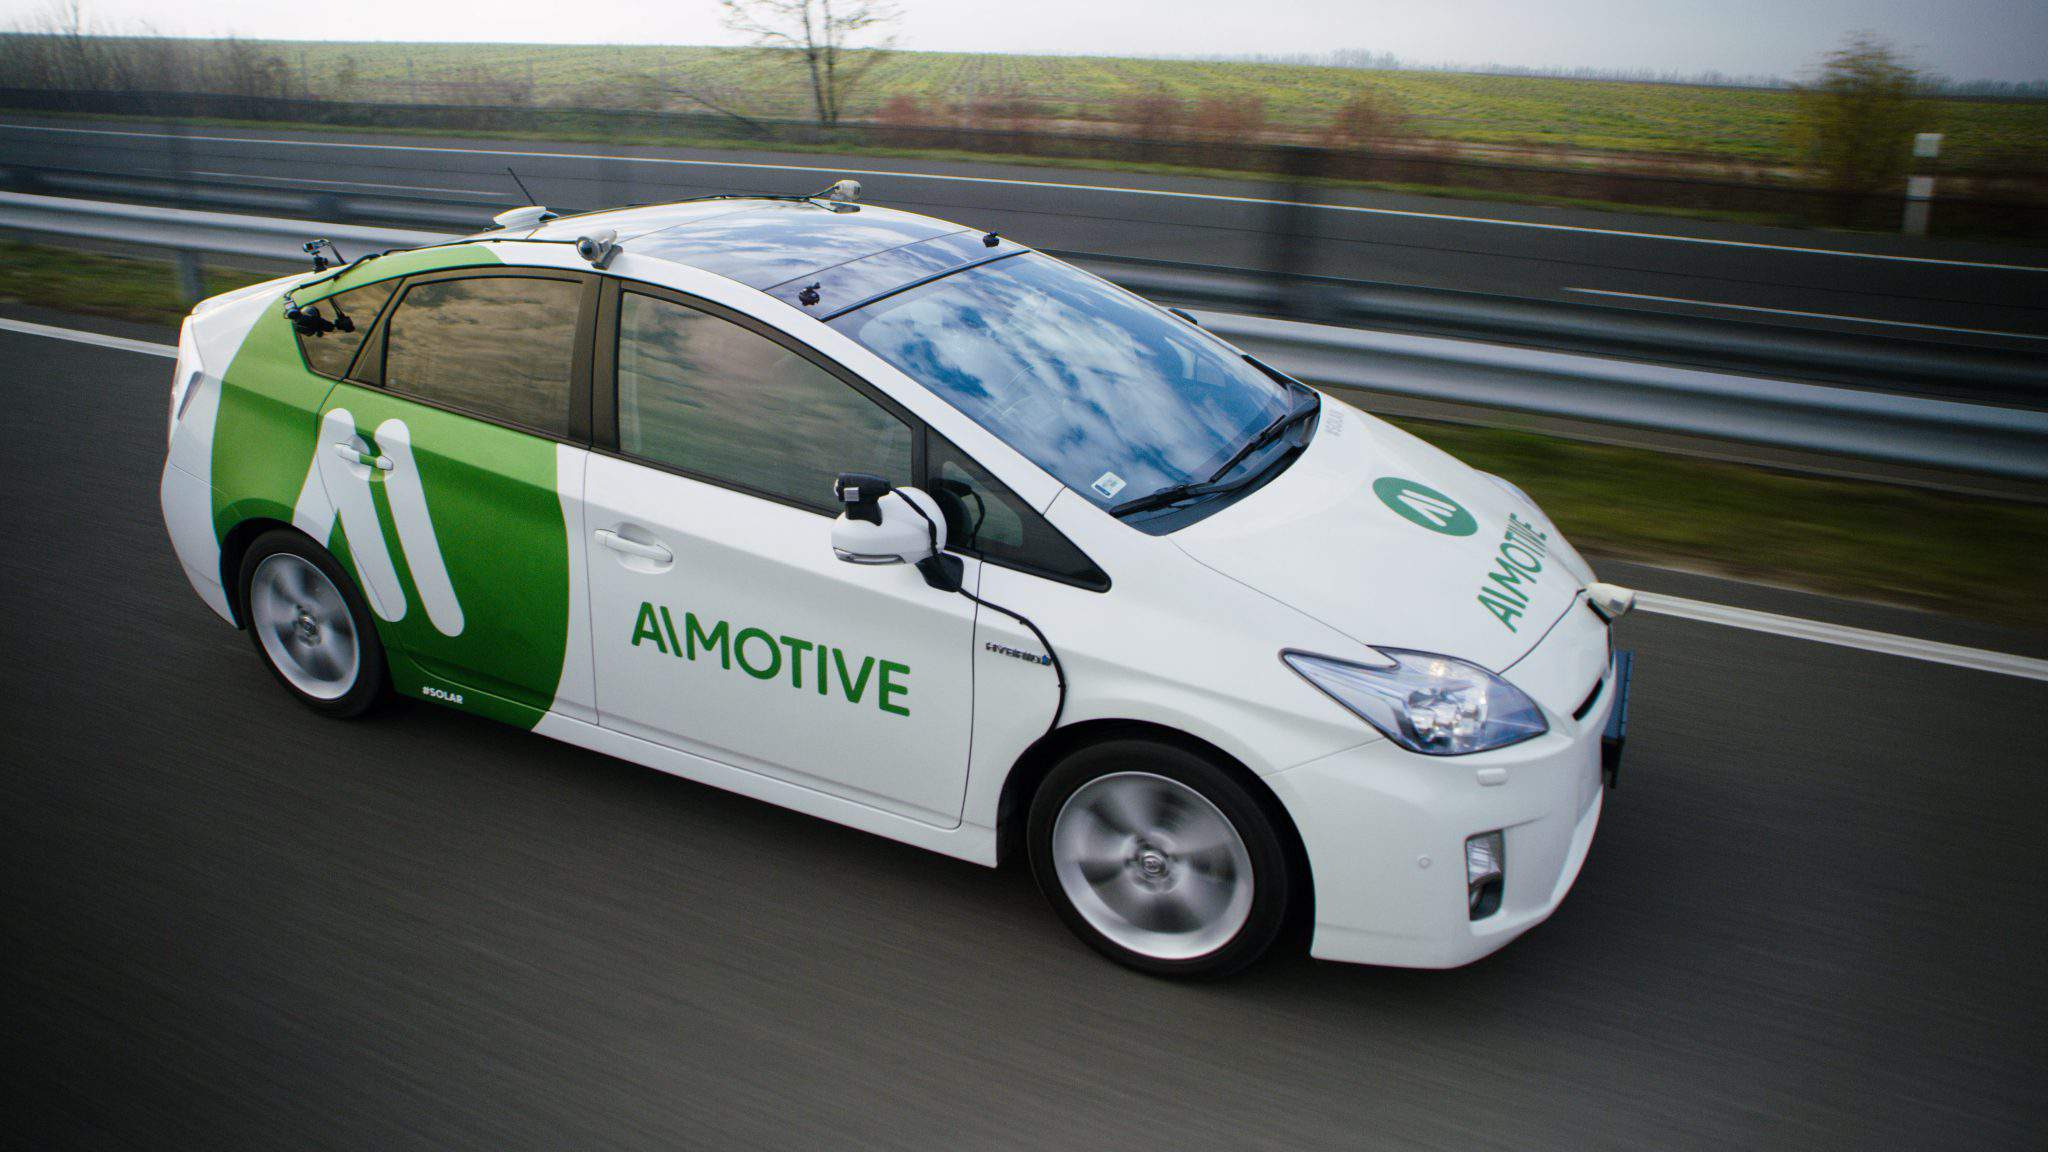 aimotive-prototypes-on-the-road-3